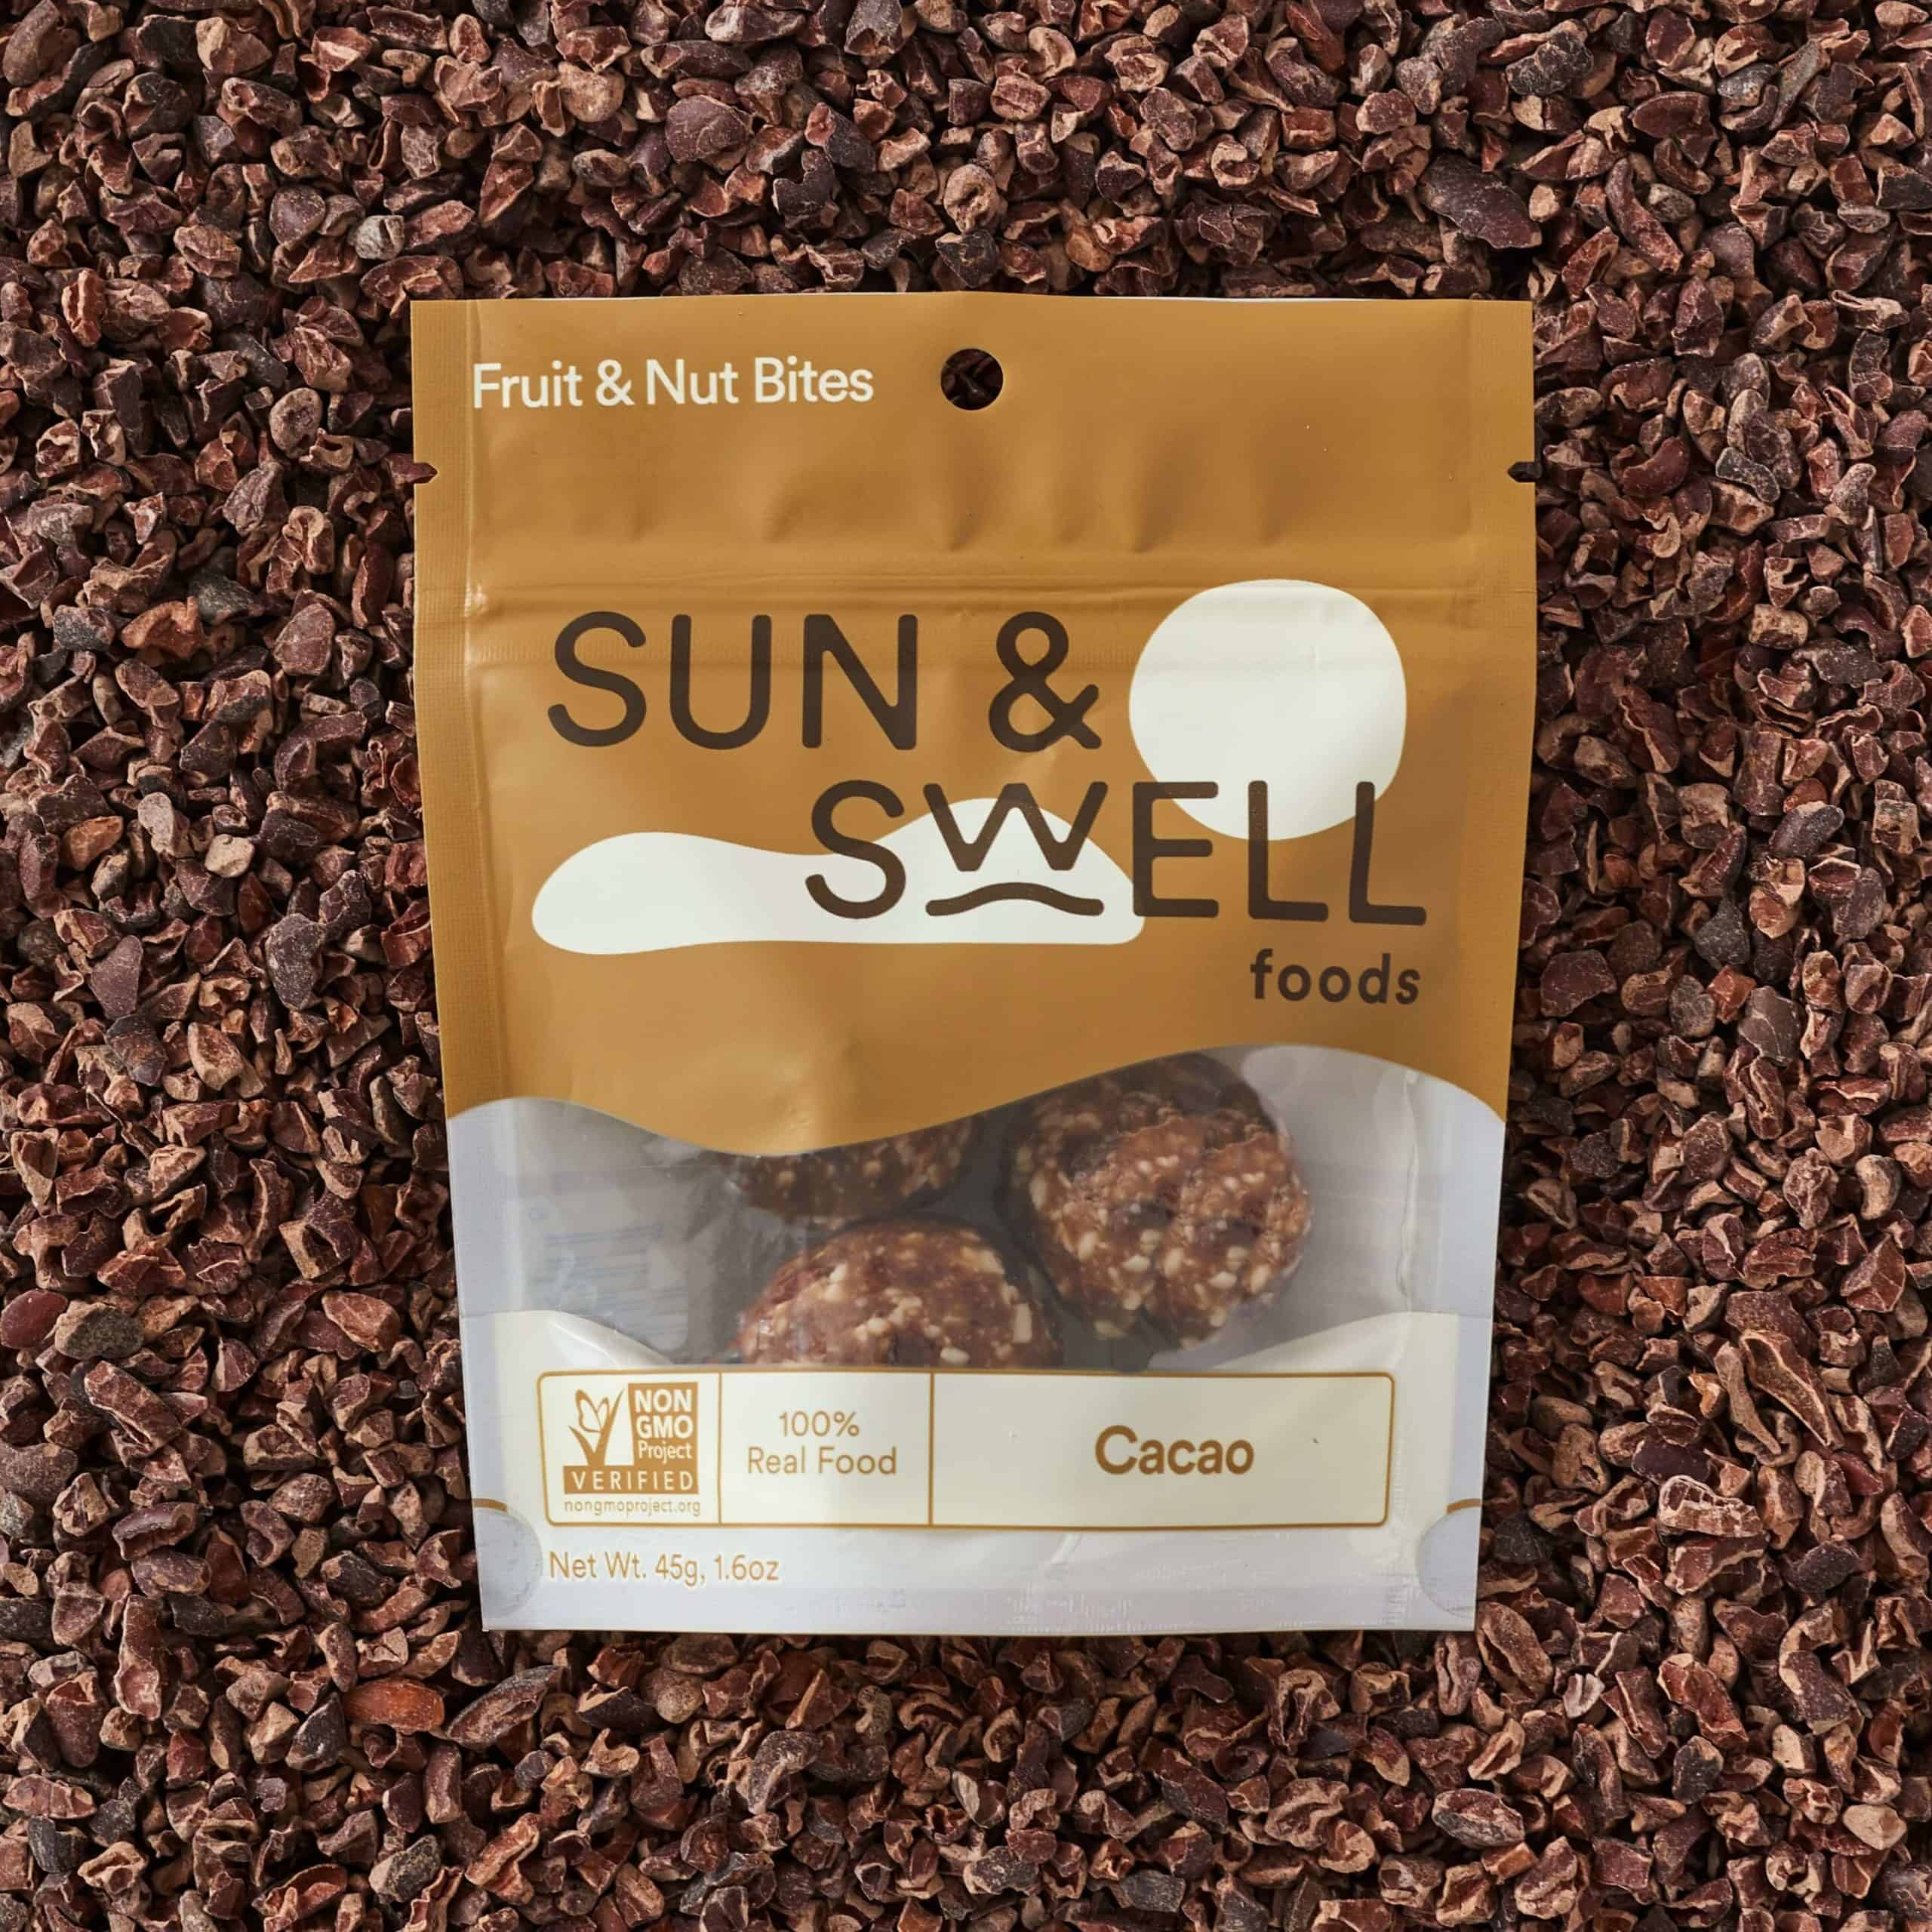 Cacao sun and swell